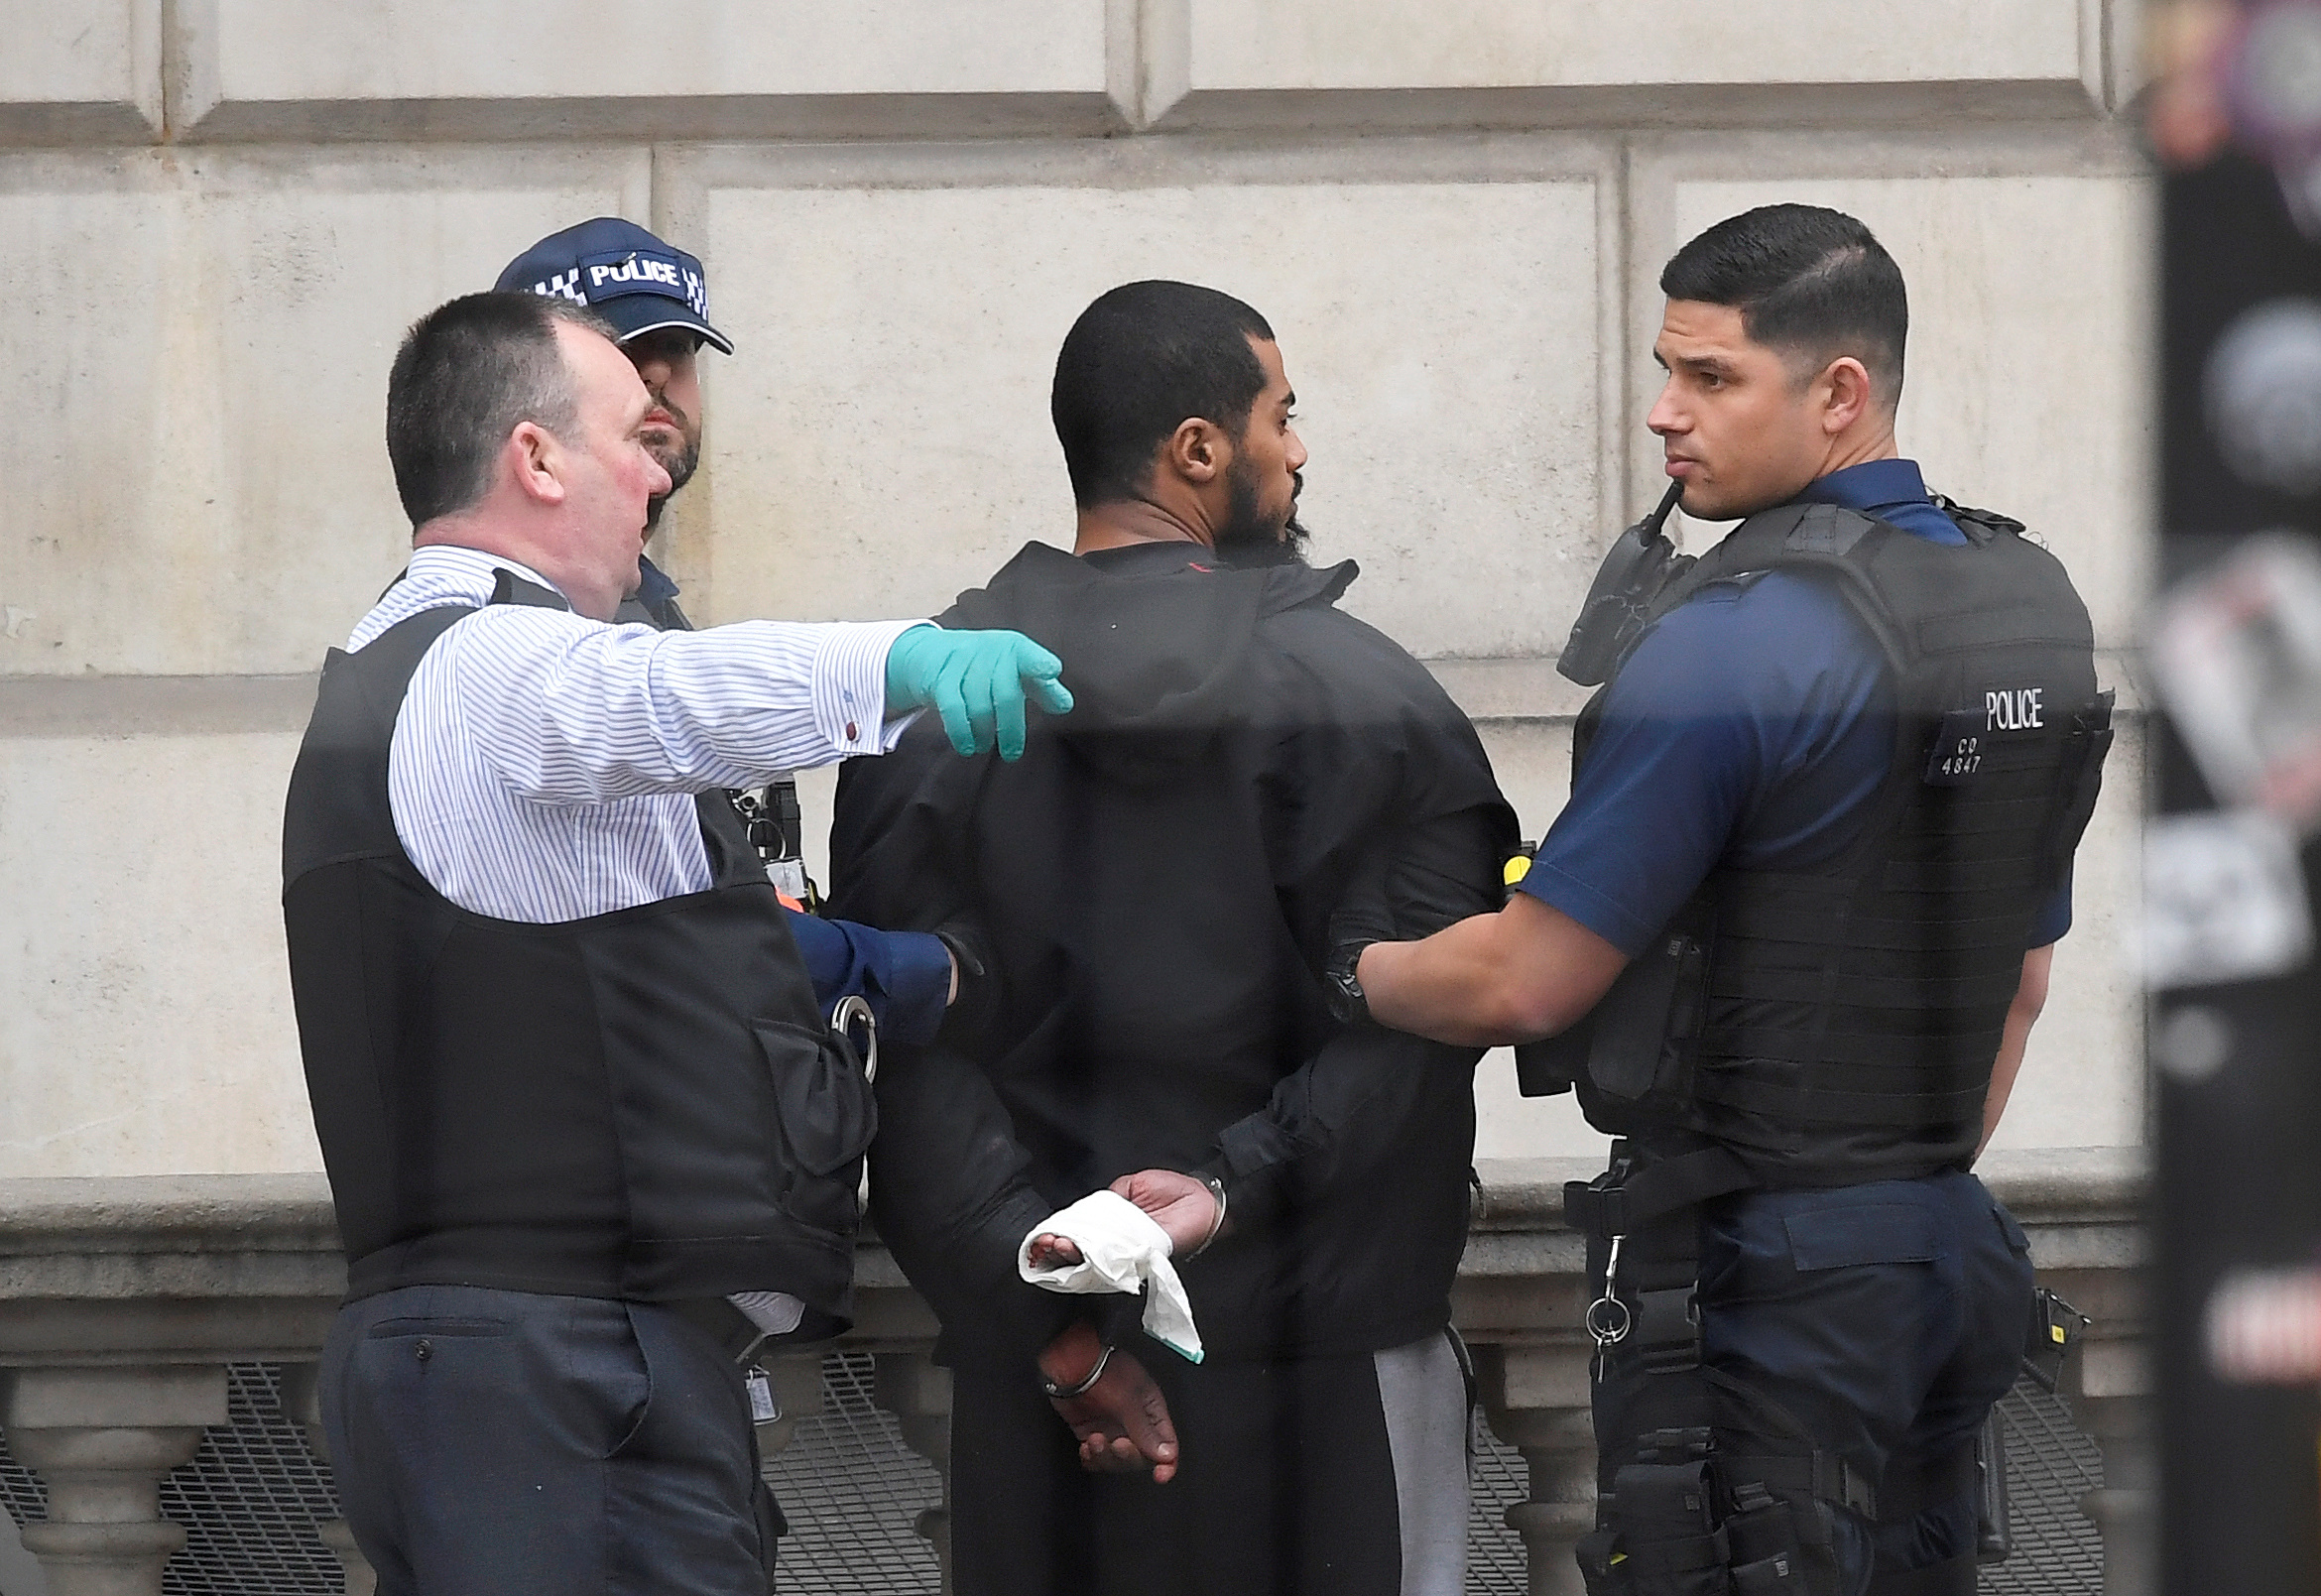 A man is held by police in Westminster after an arrest was made on Whitehall in central London, Britain. REUTERS/Toby Melville